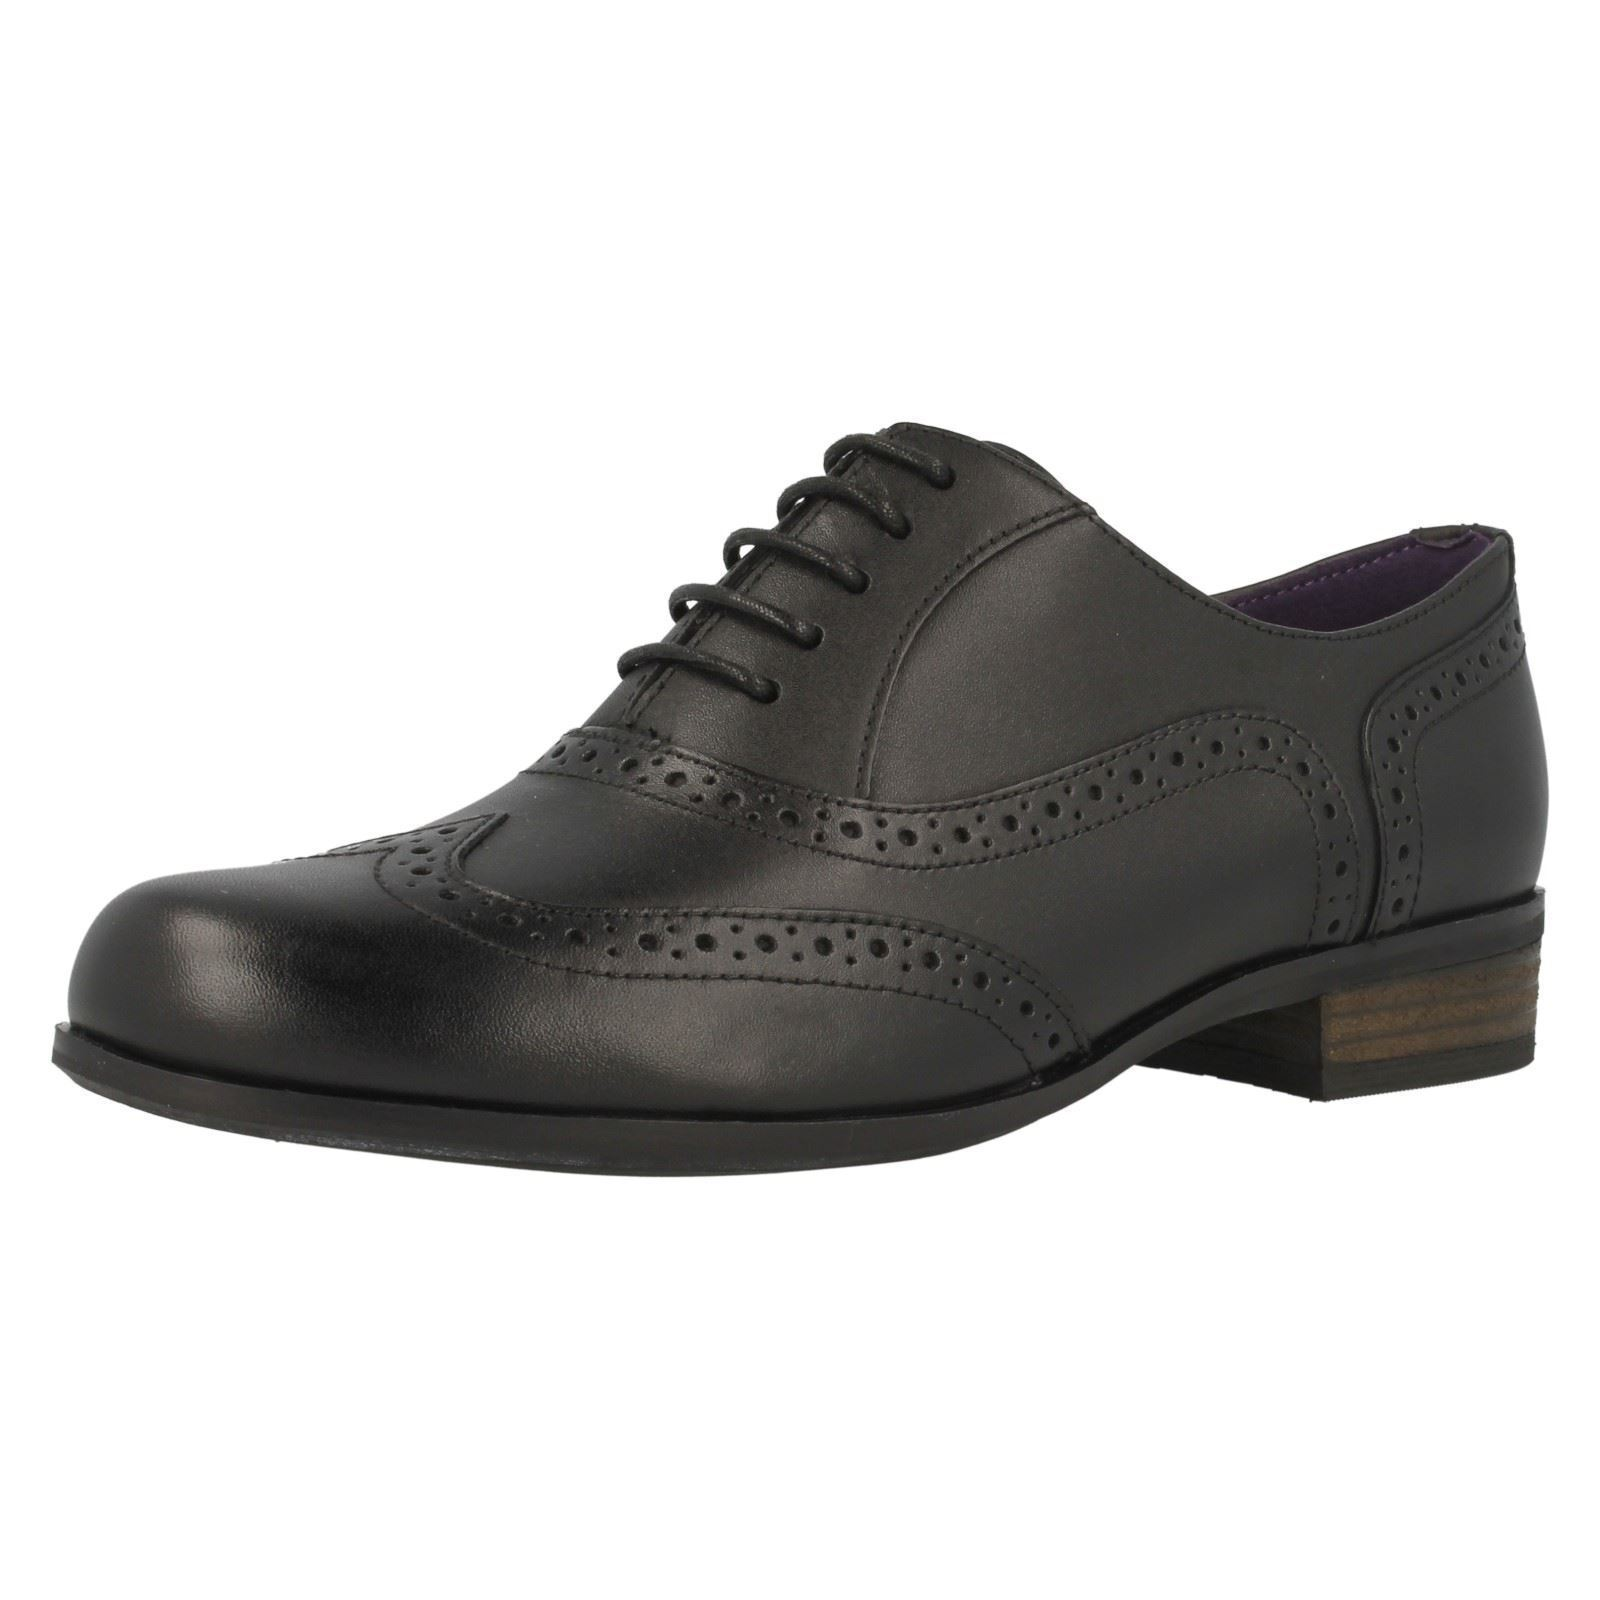 Clarks Hamble Oak Donna Nero Pelle Stringati Scarpe D Width Fitting